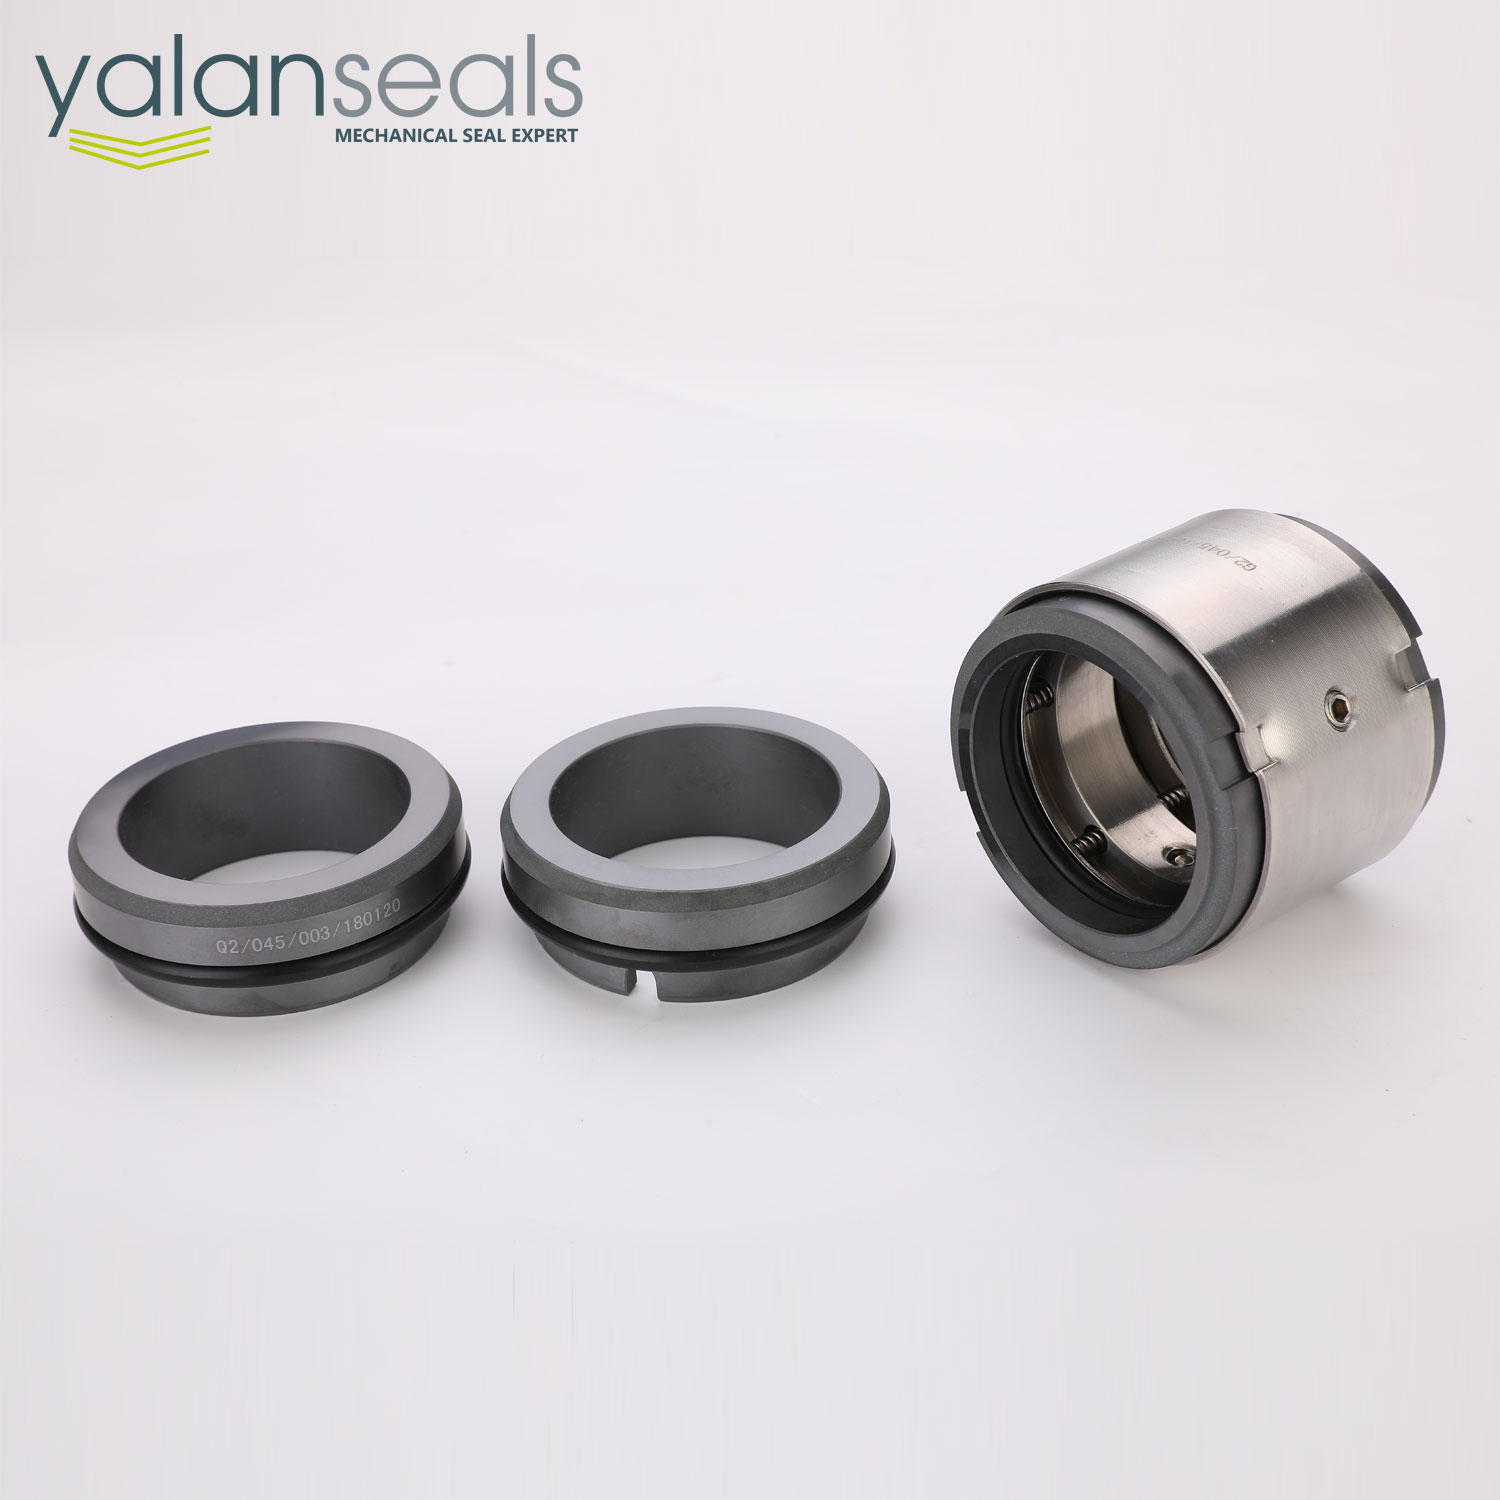 YALAN M74-D Double End Mechanical Seals for Chemical Centrifugal Pumps, KSB/Kaiquan Water Pumps and Double Suction Pumps